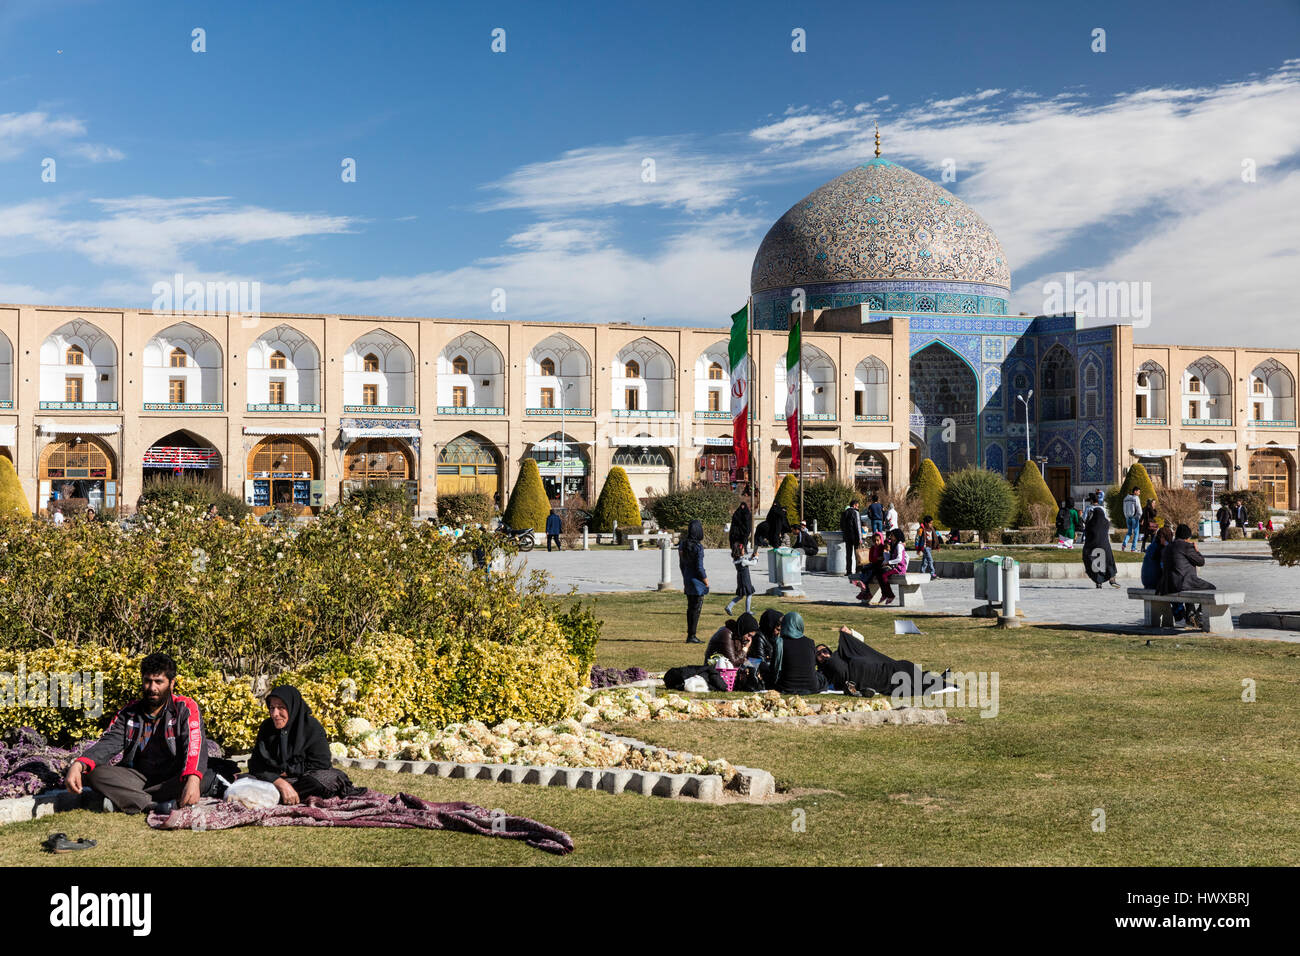 Imam Square in Isfahan with visitors, including picnickers, chador-clad women, and dome of Sheikh Lotfallah Mosque - Stock Image